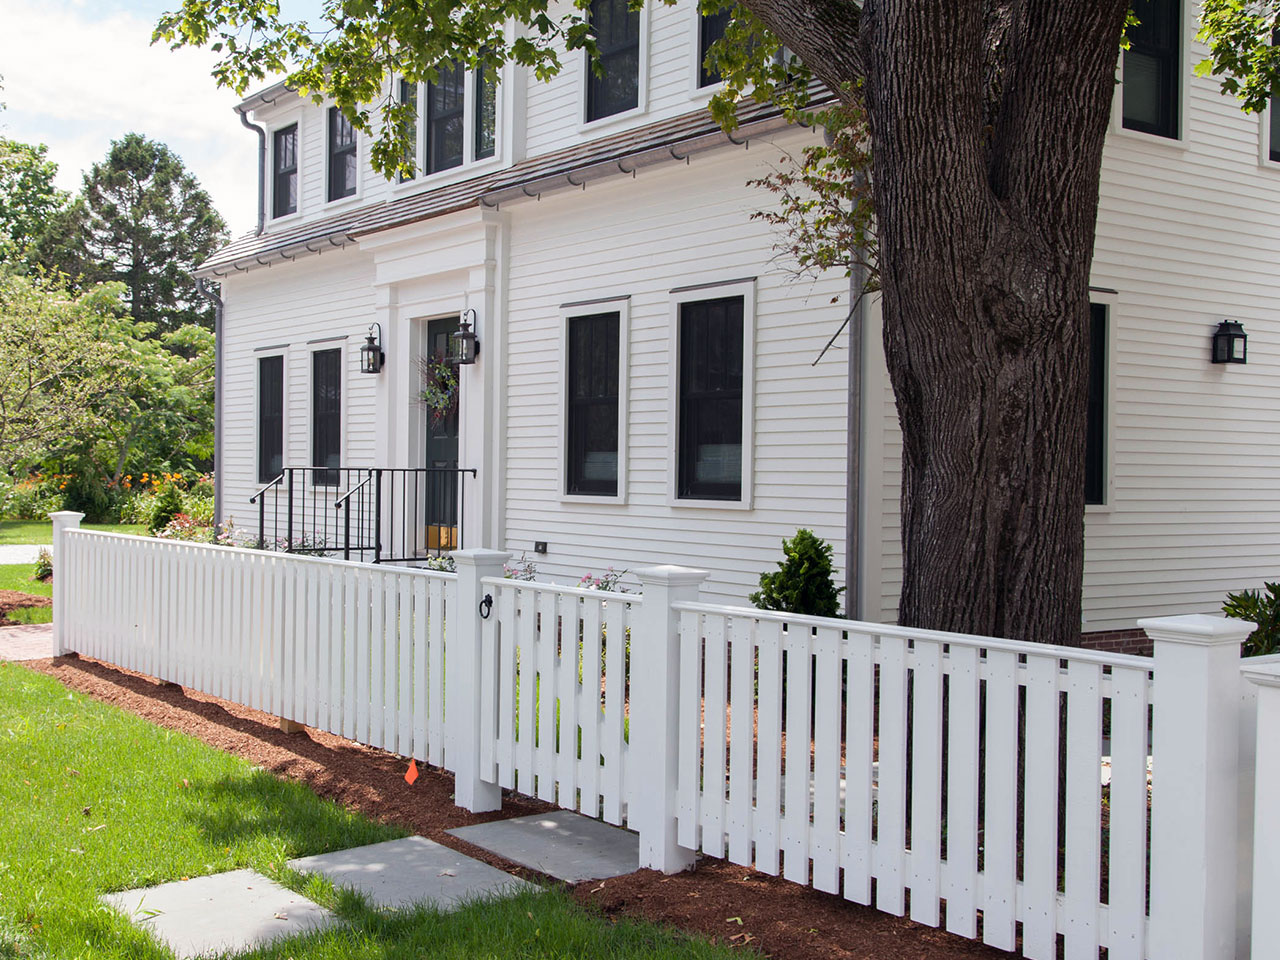 Vinyl spaced picket fence